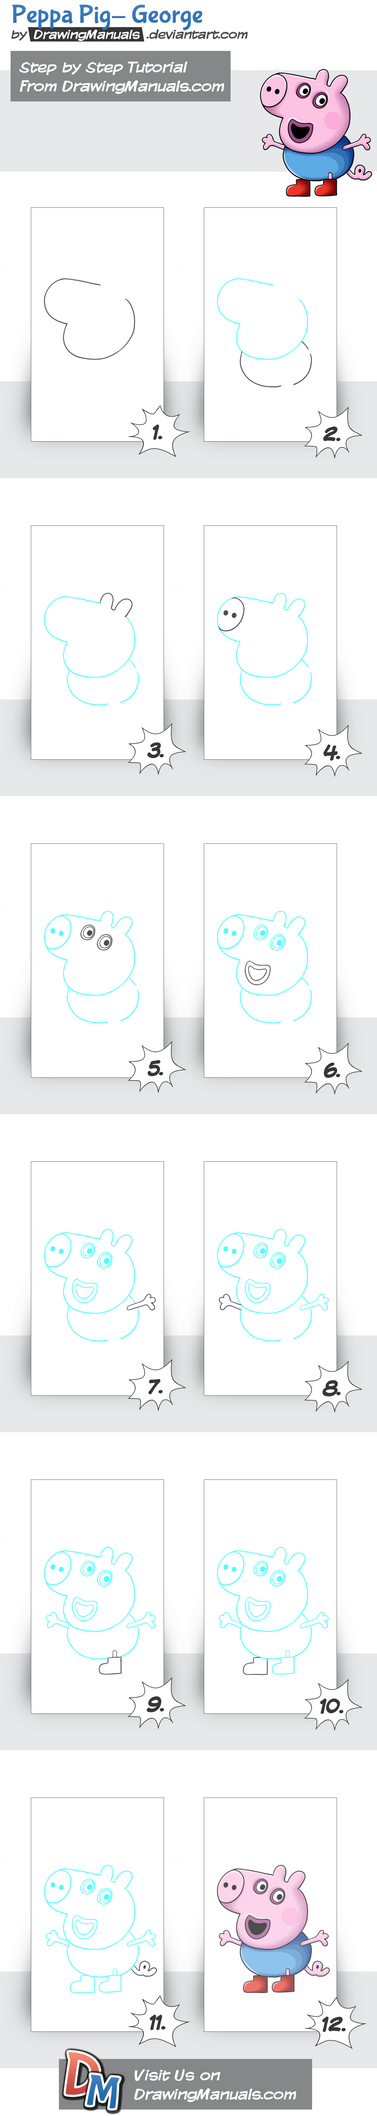 How-to-draw-peppa-pig-george Deviantart by DrawingManuals